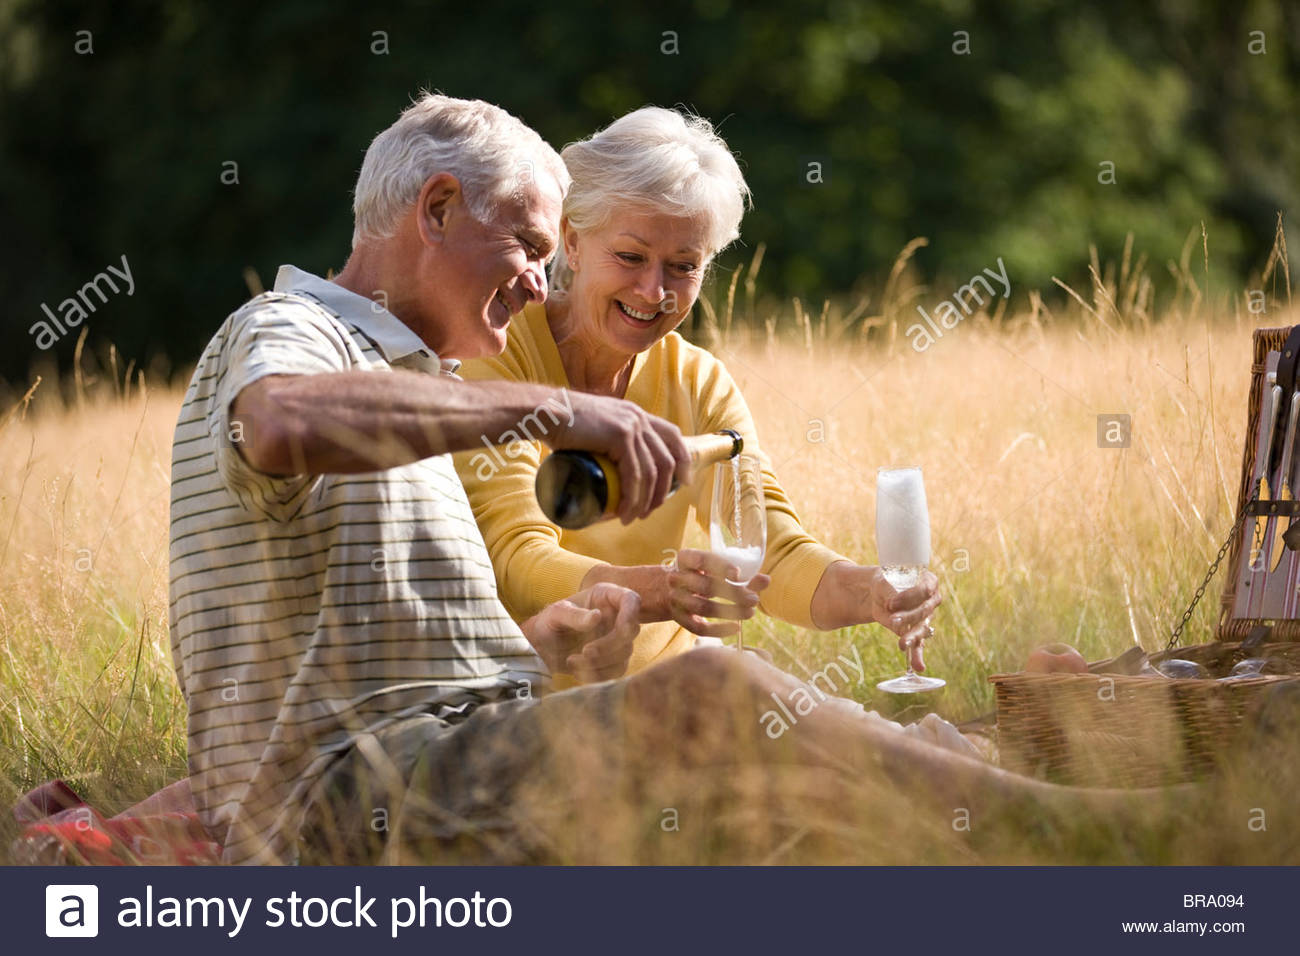 A senior couple having a picnic, man pouring champagne - Stock Image